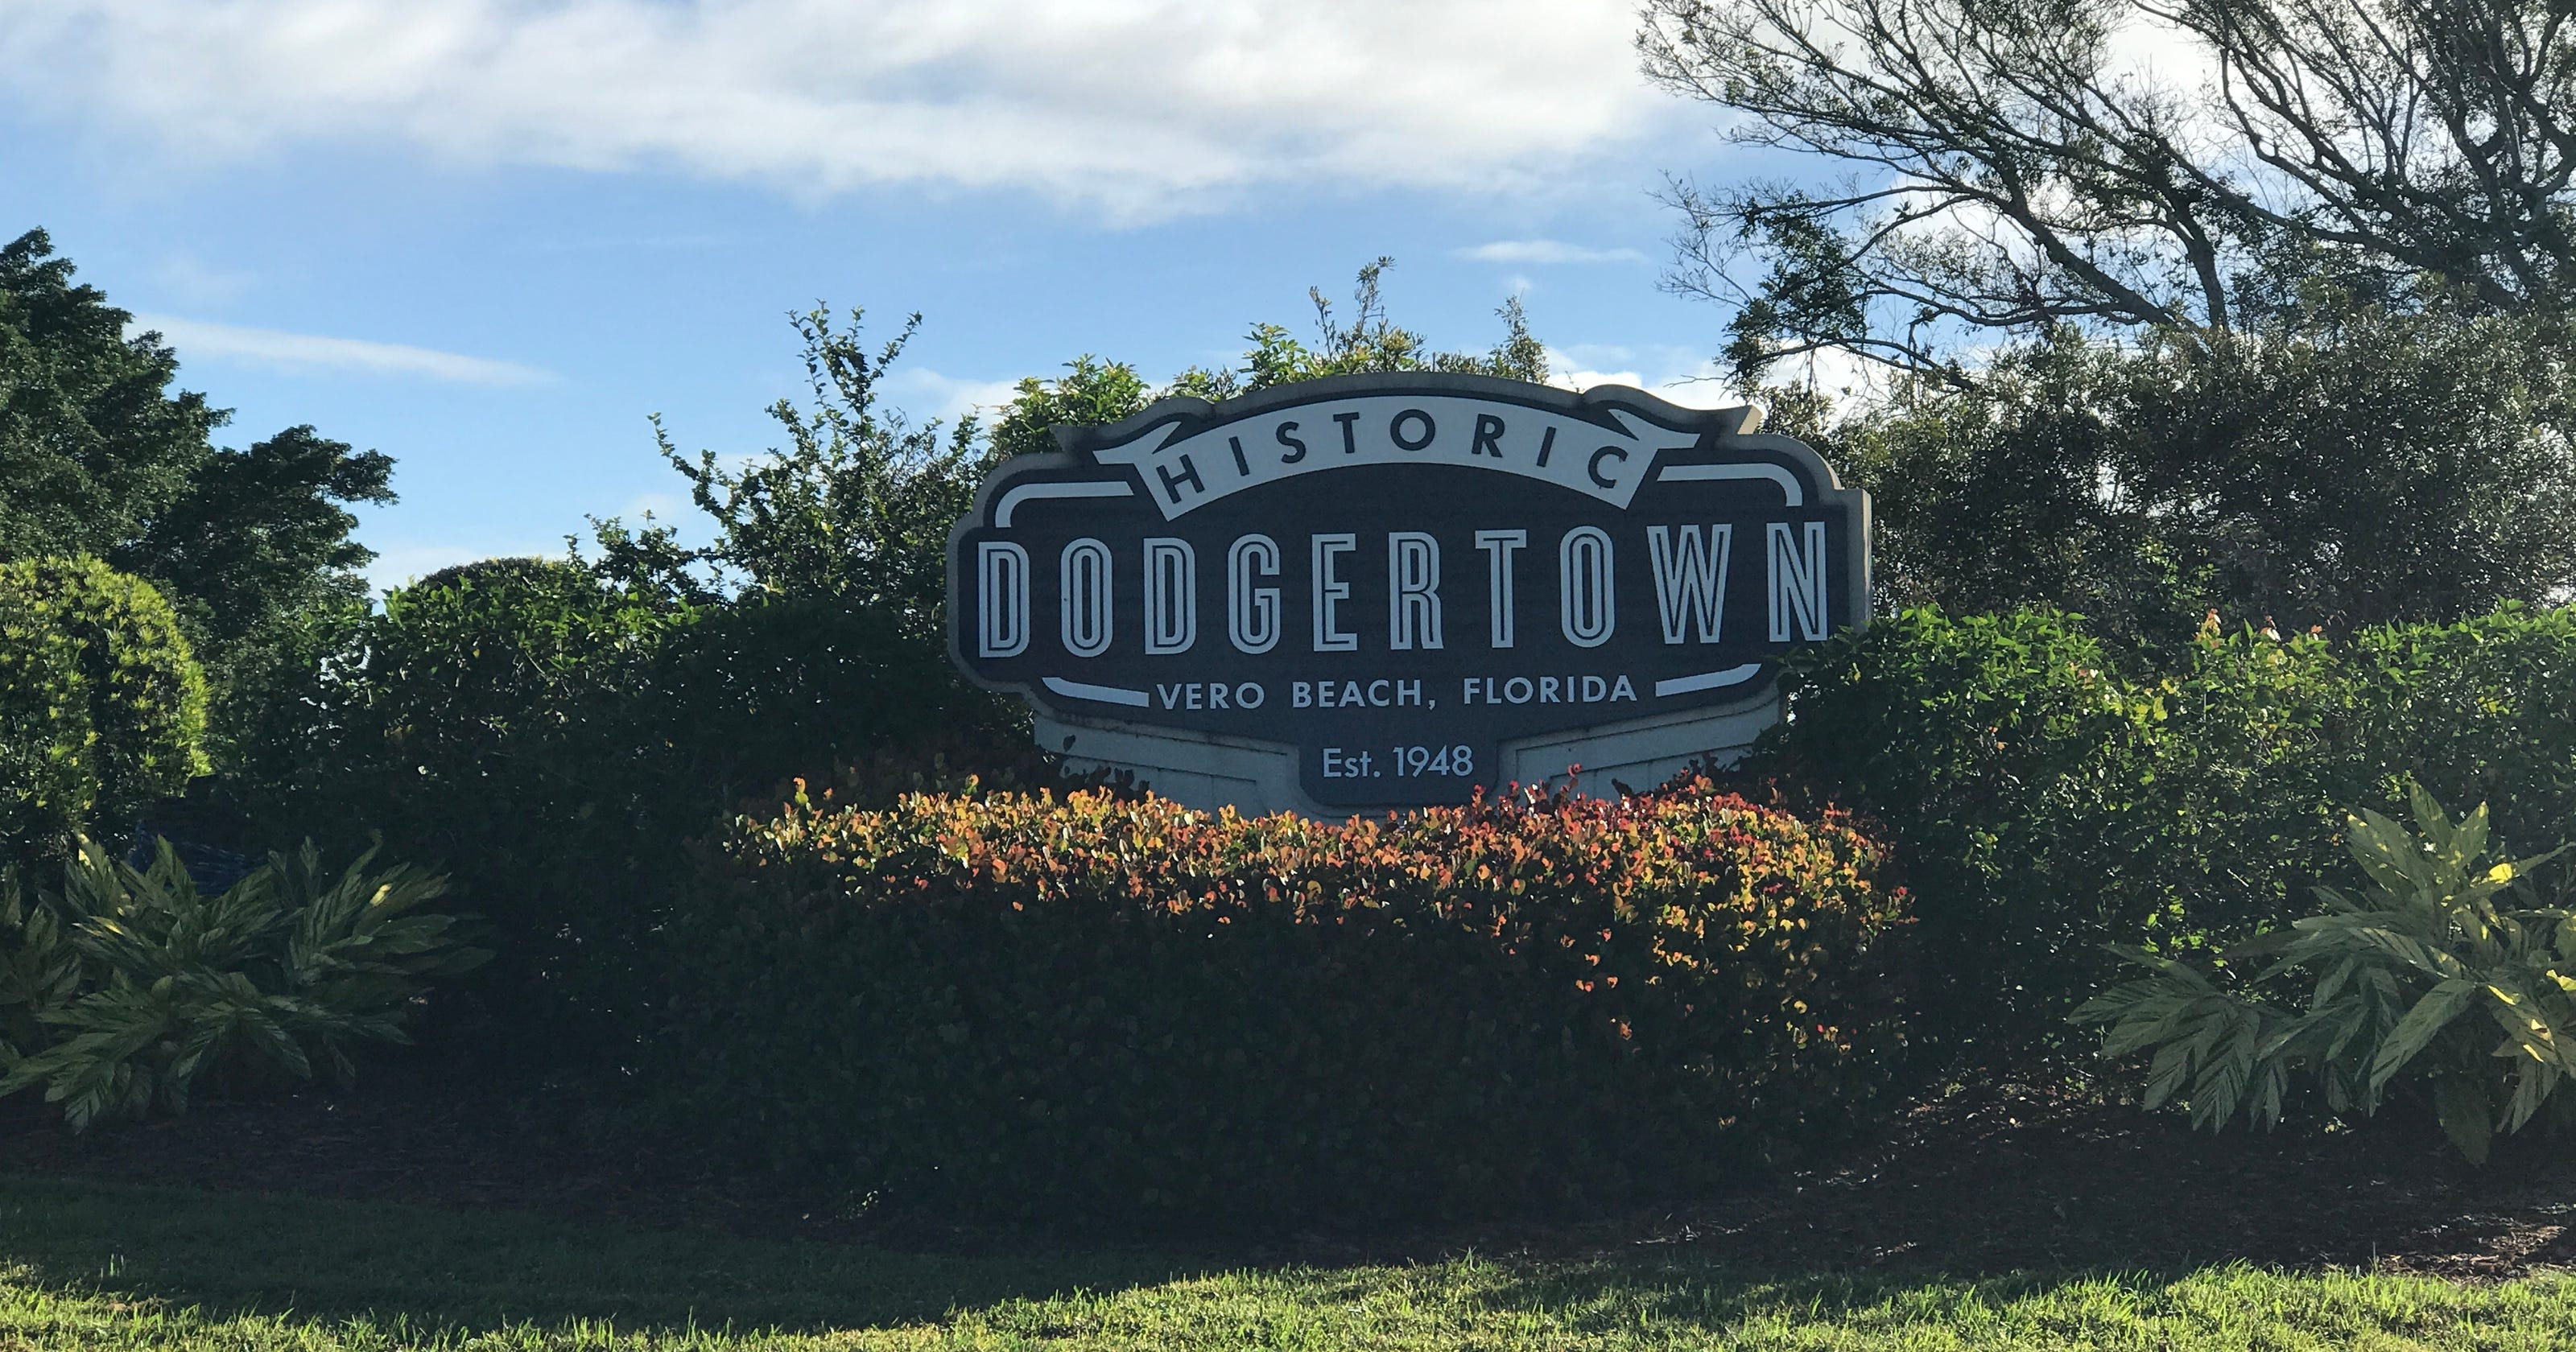 Dodgertown Golf Course Not The Right Spot For Vero Beach Hotel Experts Say